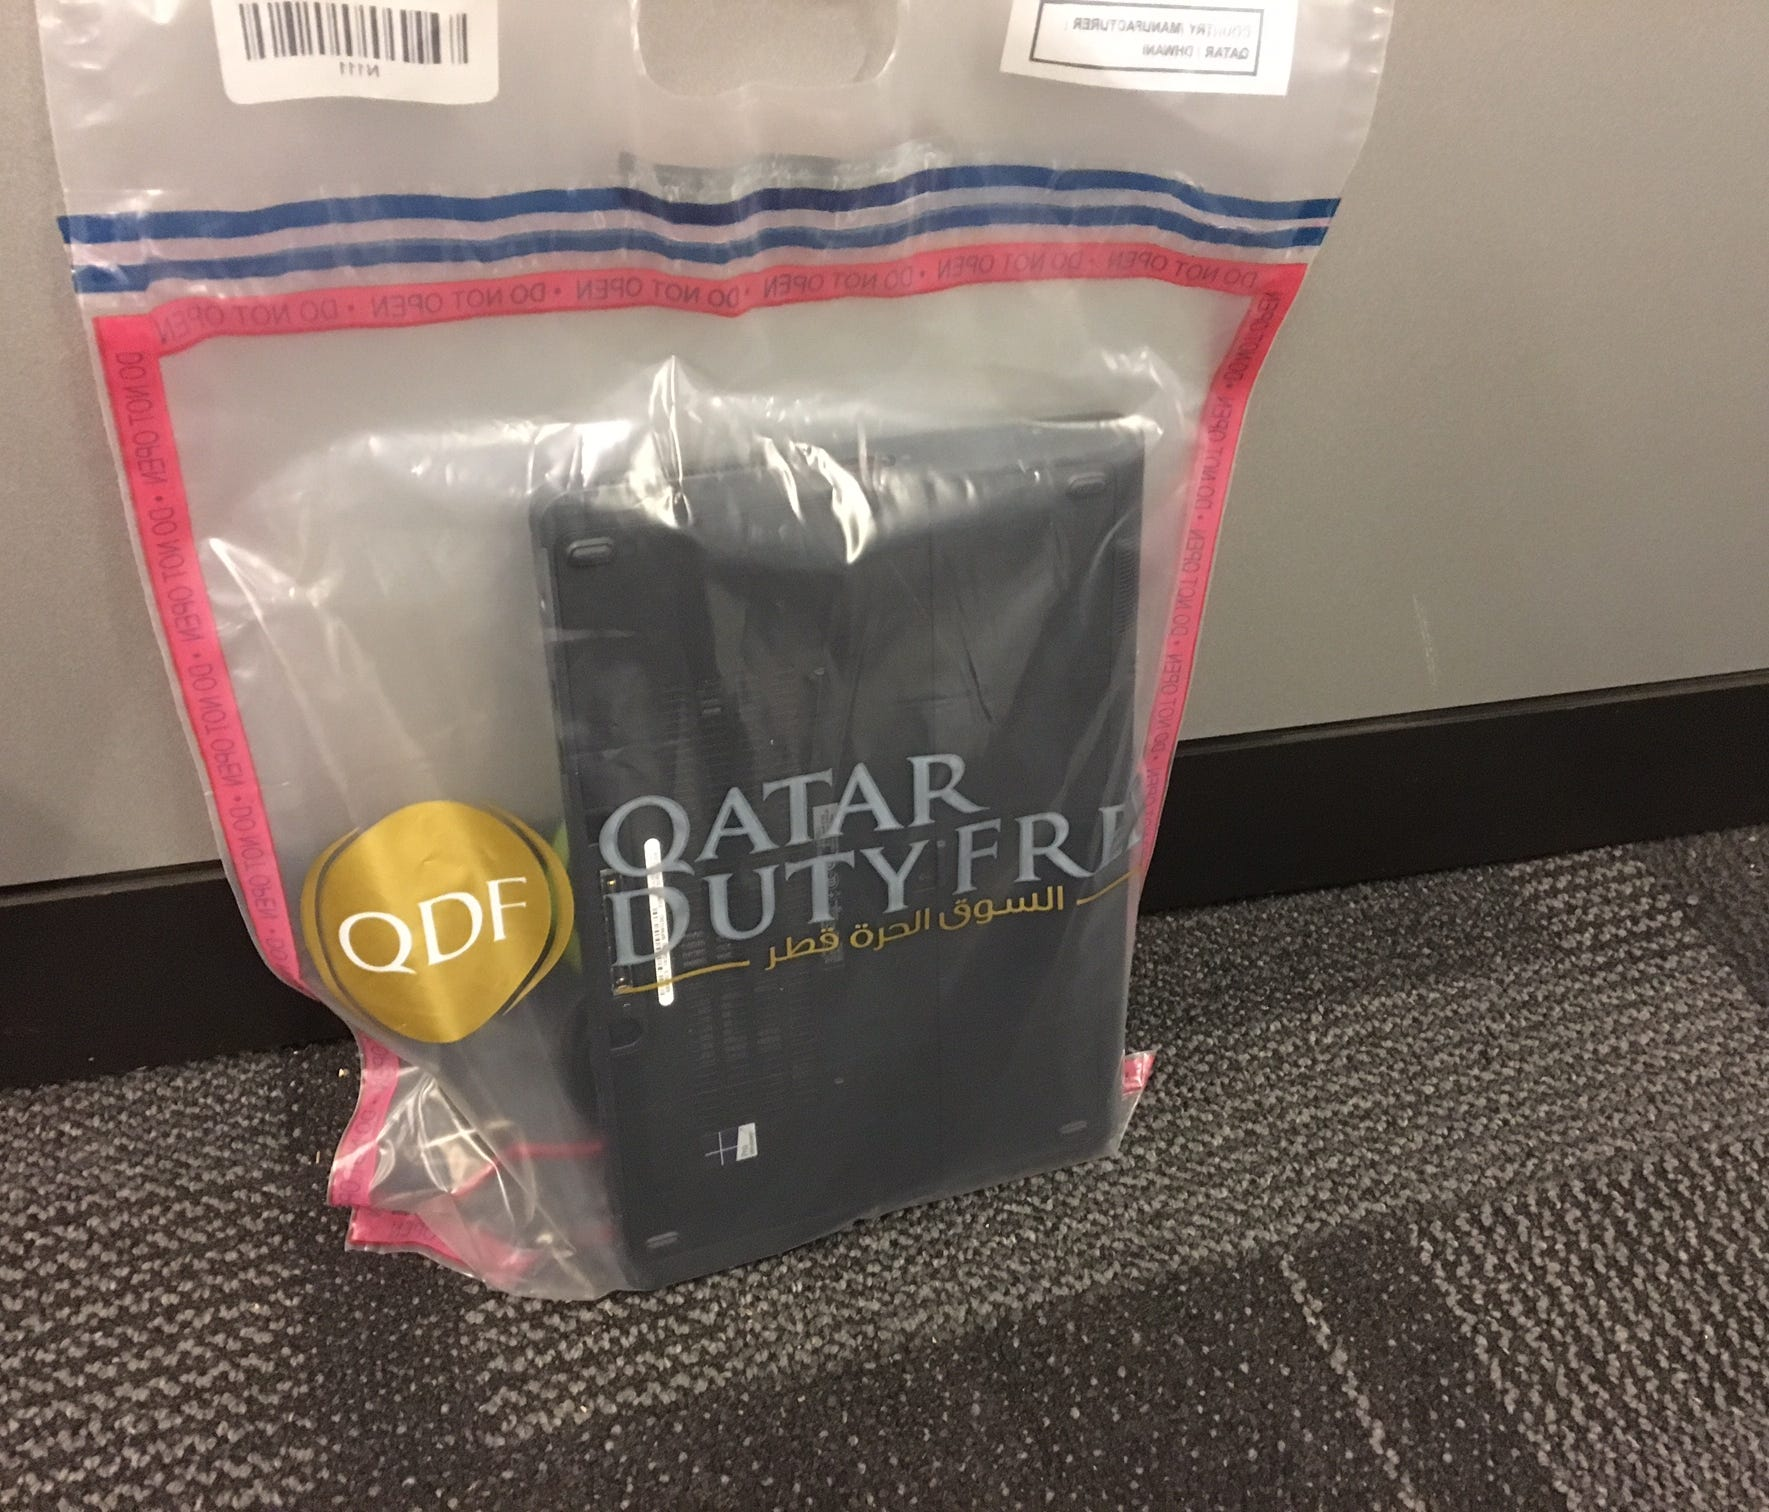 Qatar Airways swabs electronics in carry-on bags for direct flights to the U.S., for traces of explosives before sealing them in duty-free bags until the passenger is aboard the plane. This laptop was screened at the gate on July 12, 2017.